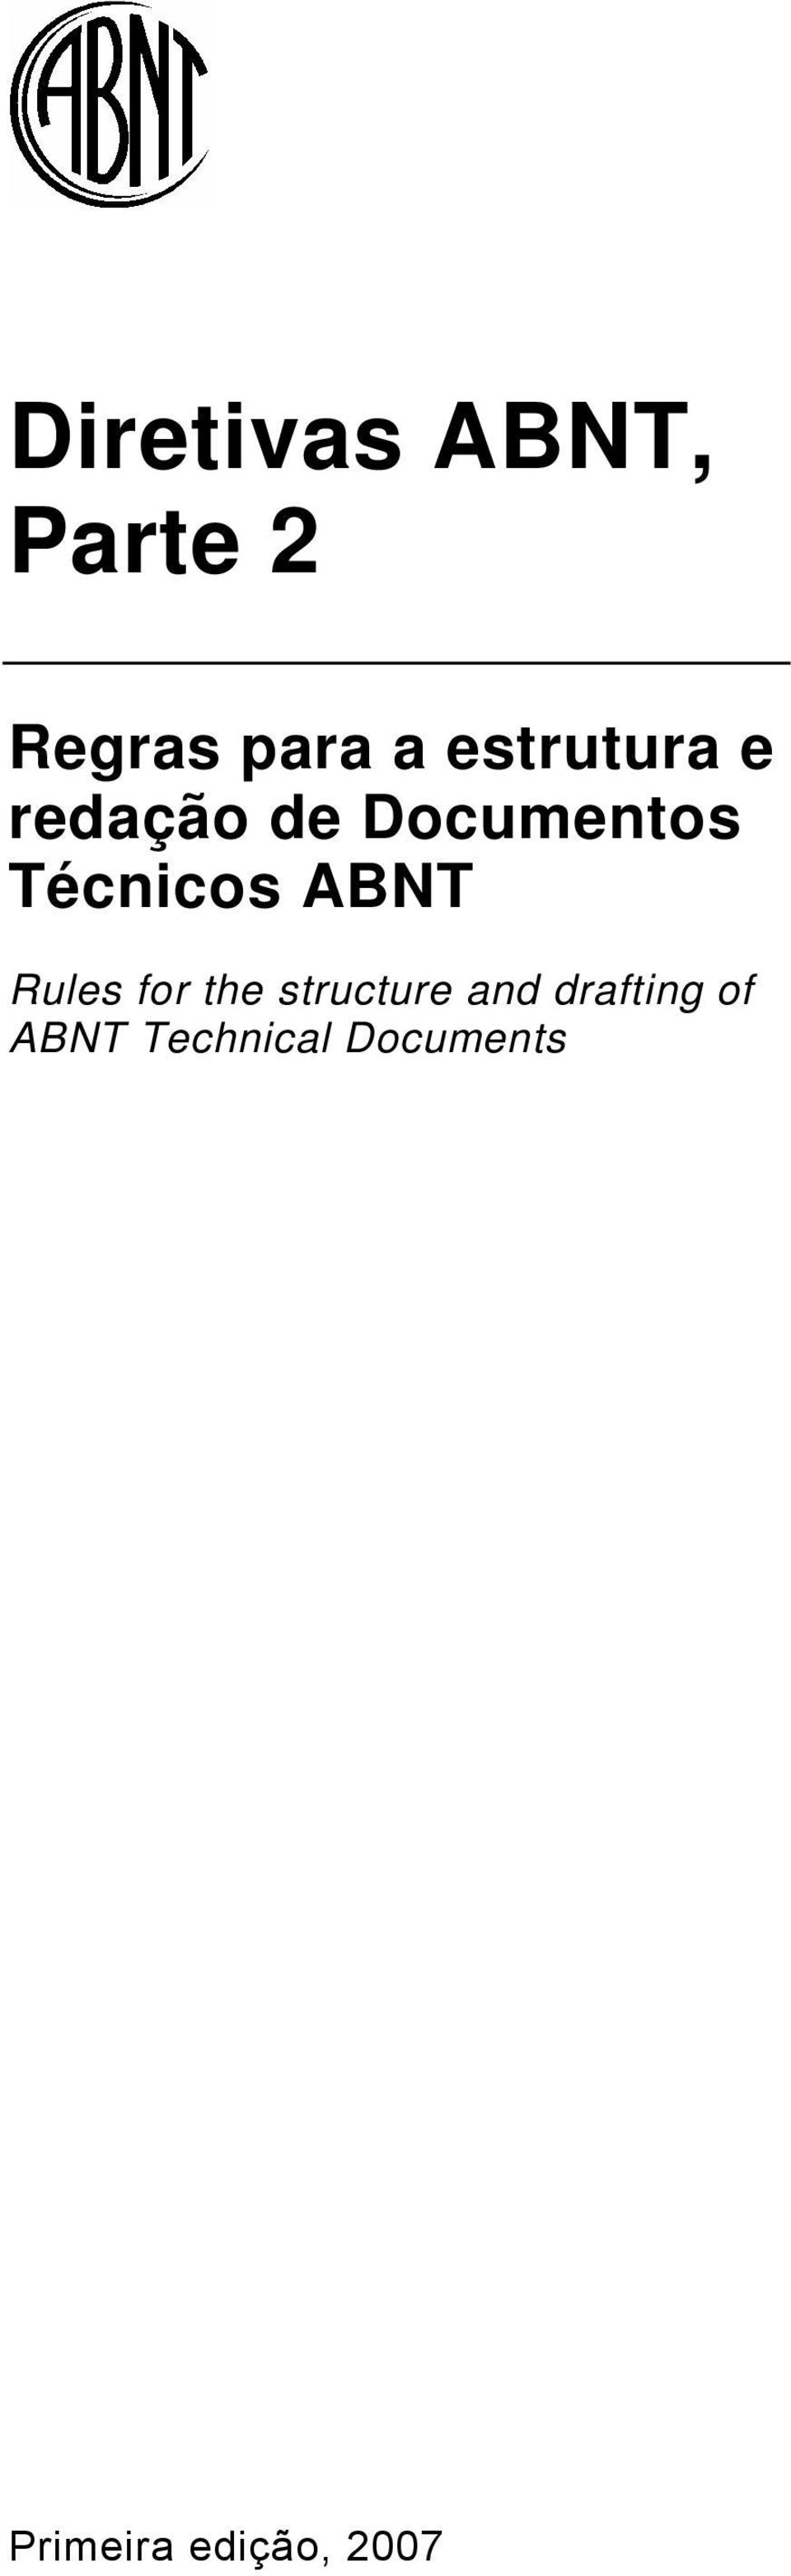 ABNT Rules for the structure and drafting